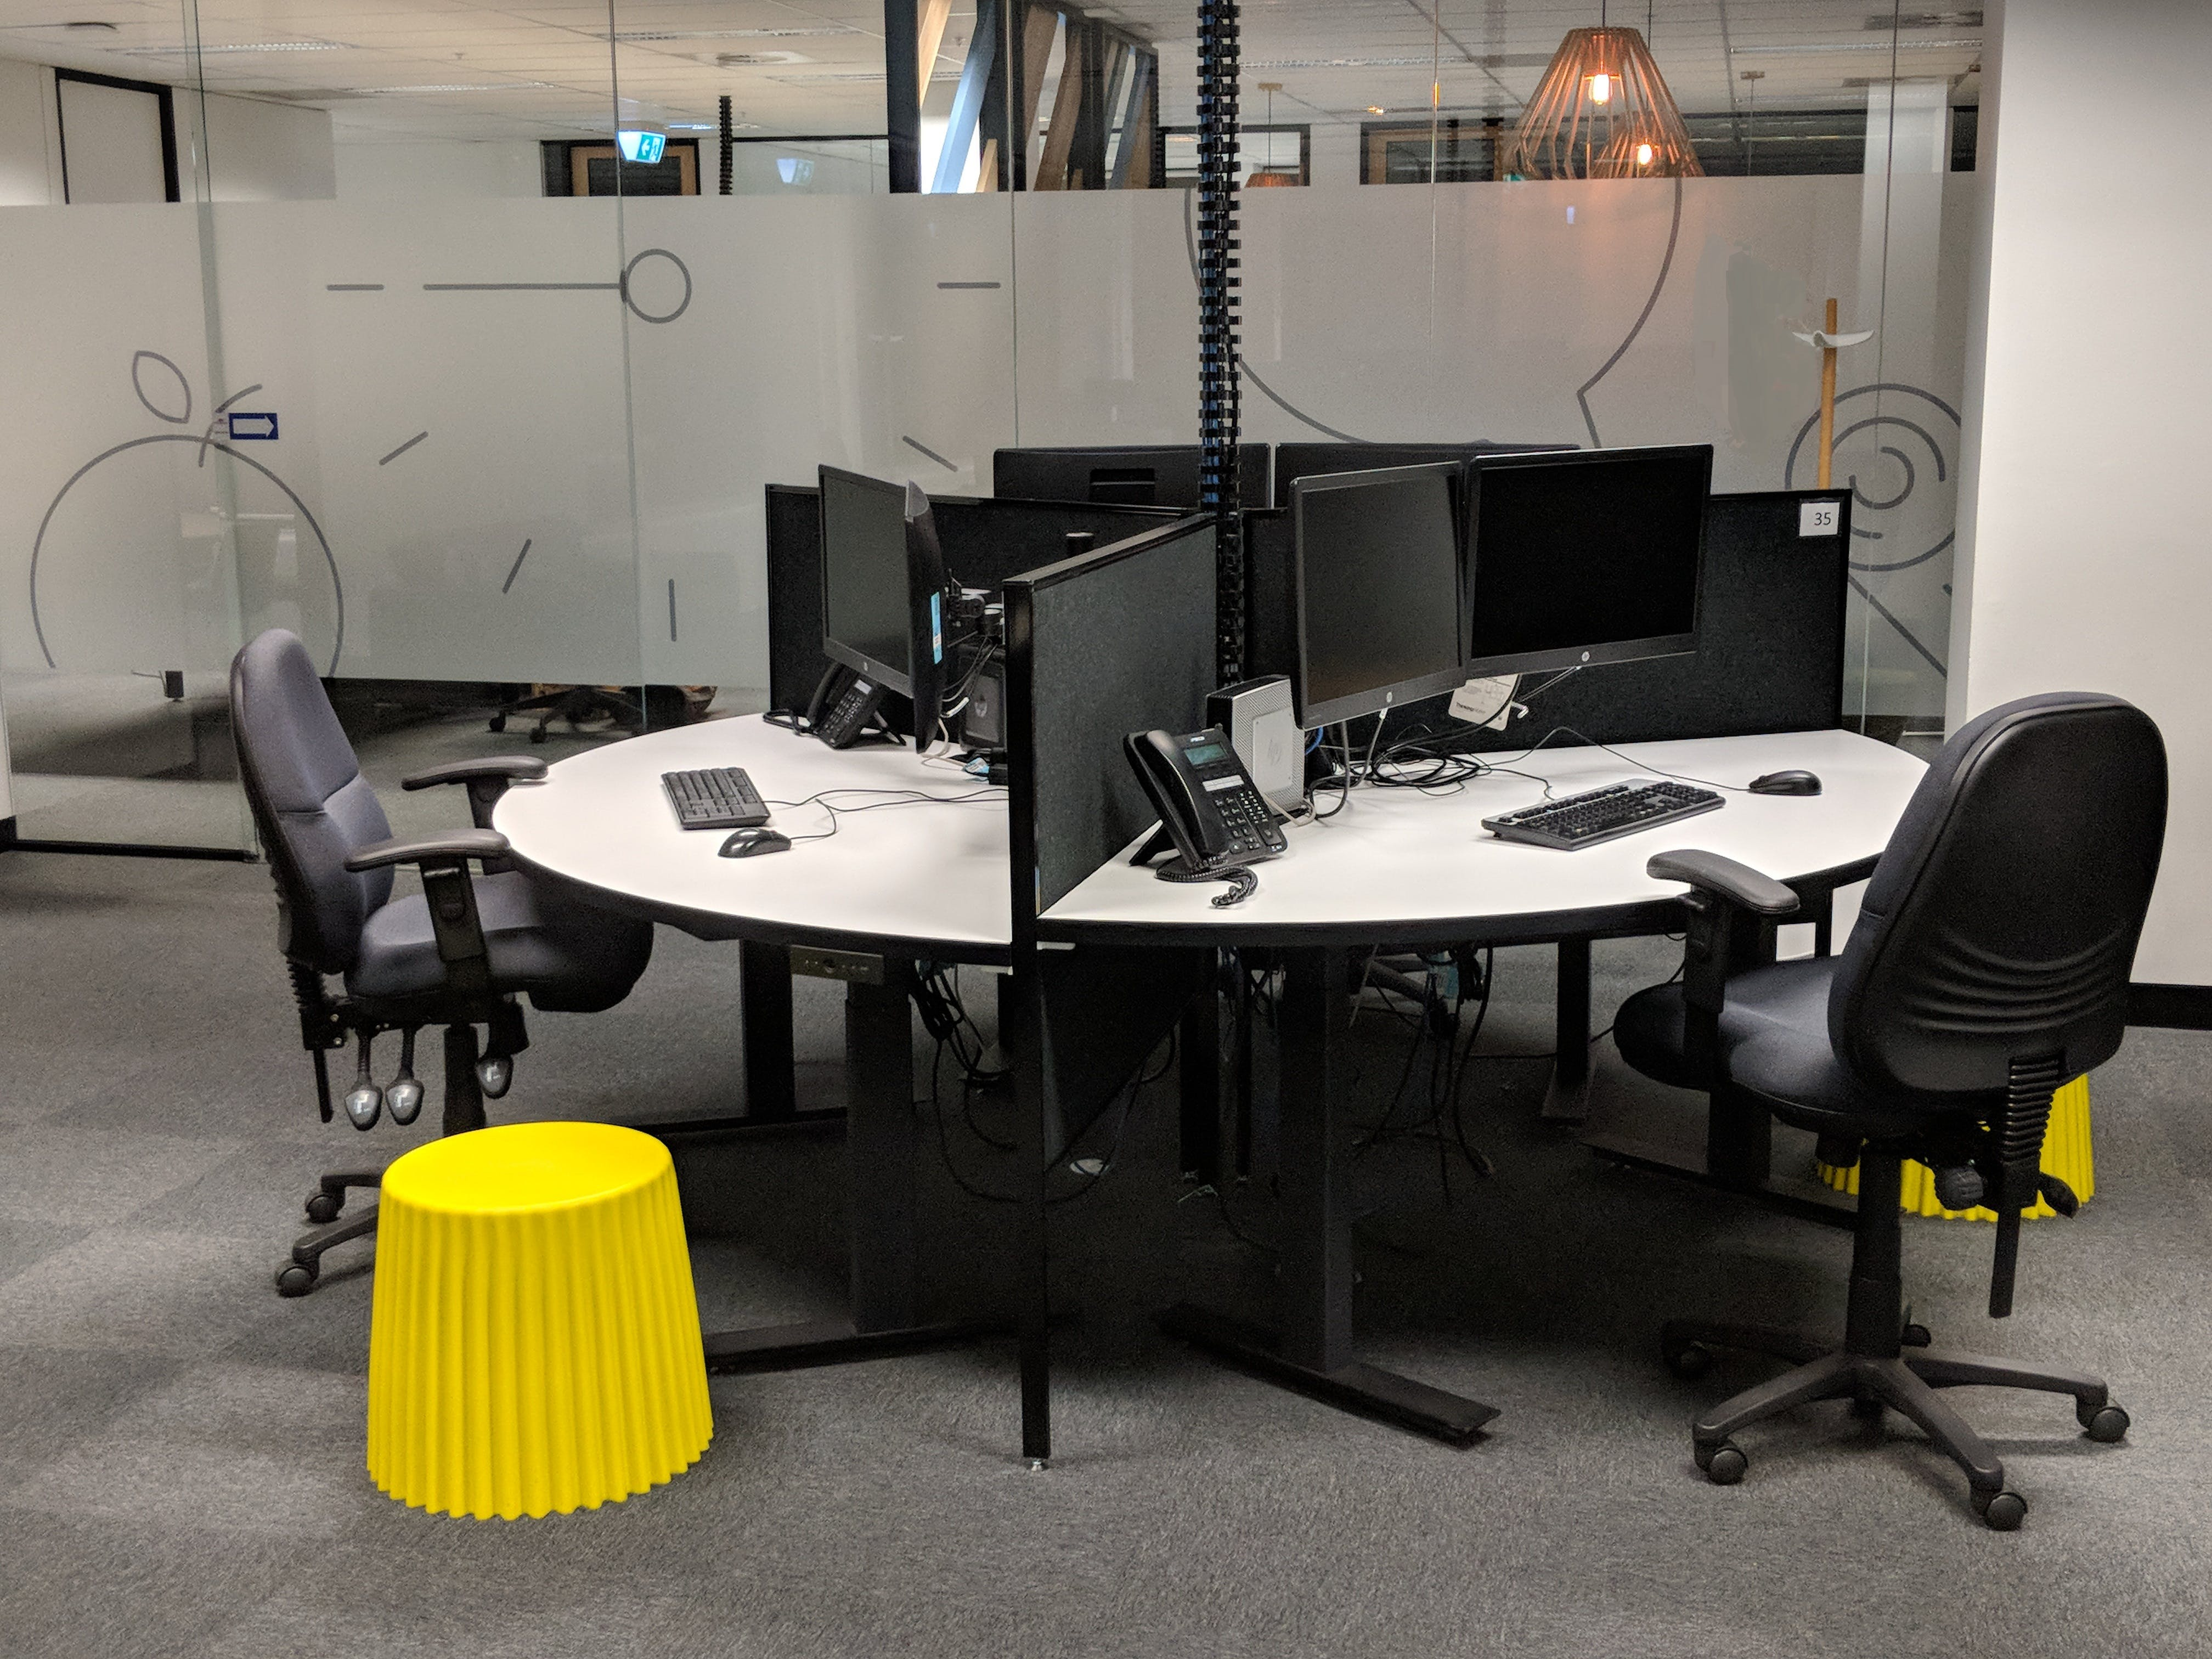 Hydraulic Desk, coworking at Space Station, image 1